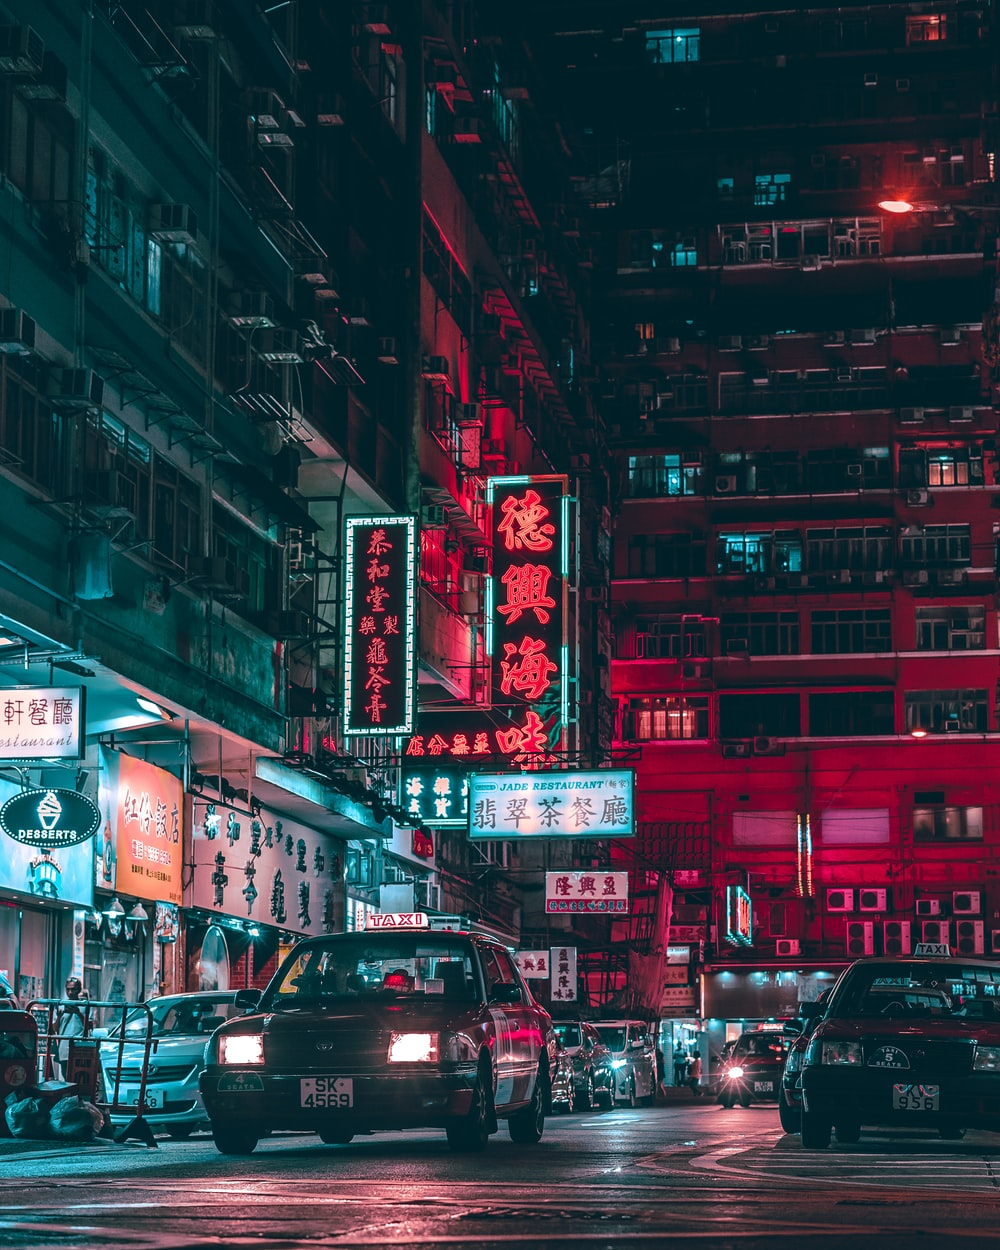 100 Aesthetic Pictures Hd Download Free Images On Unsplash